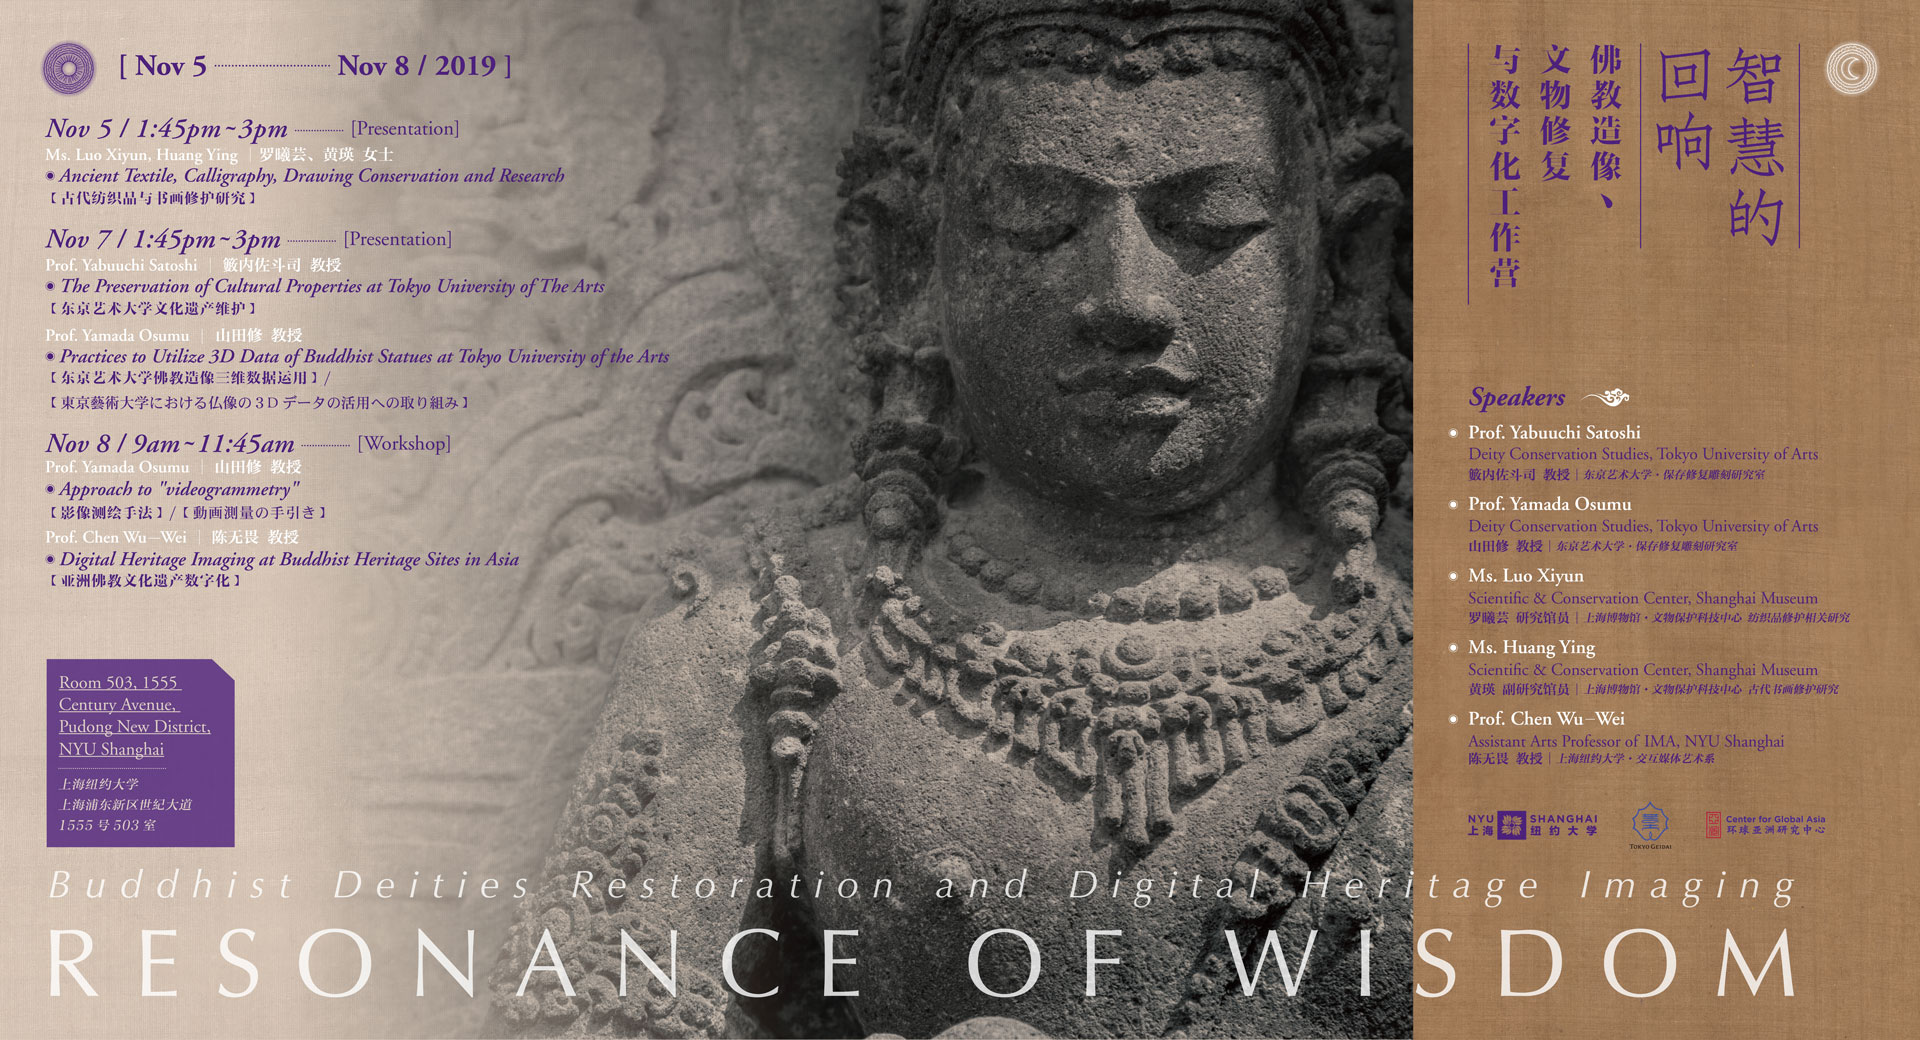 Resonance-of-Wisdom